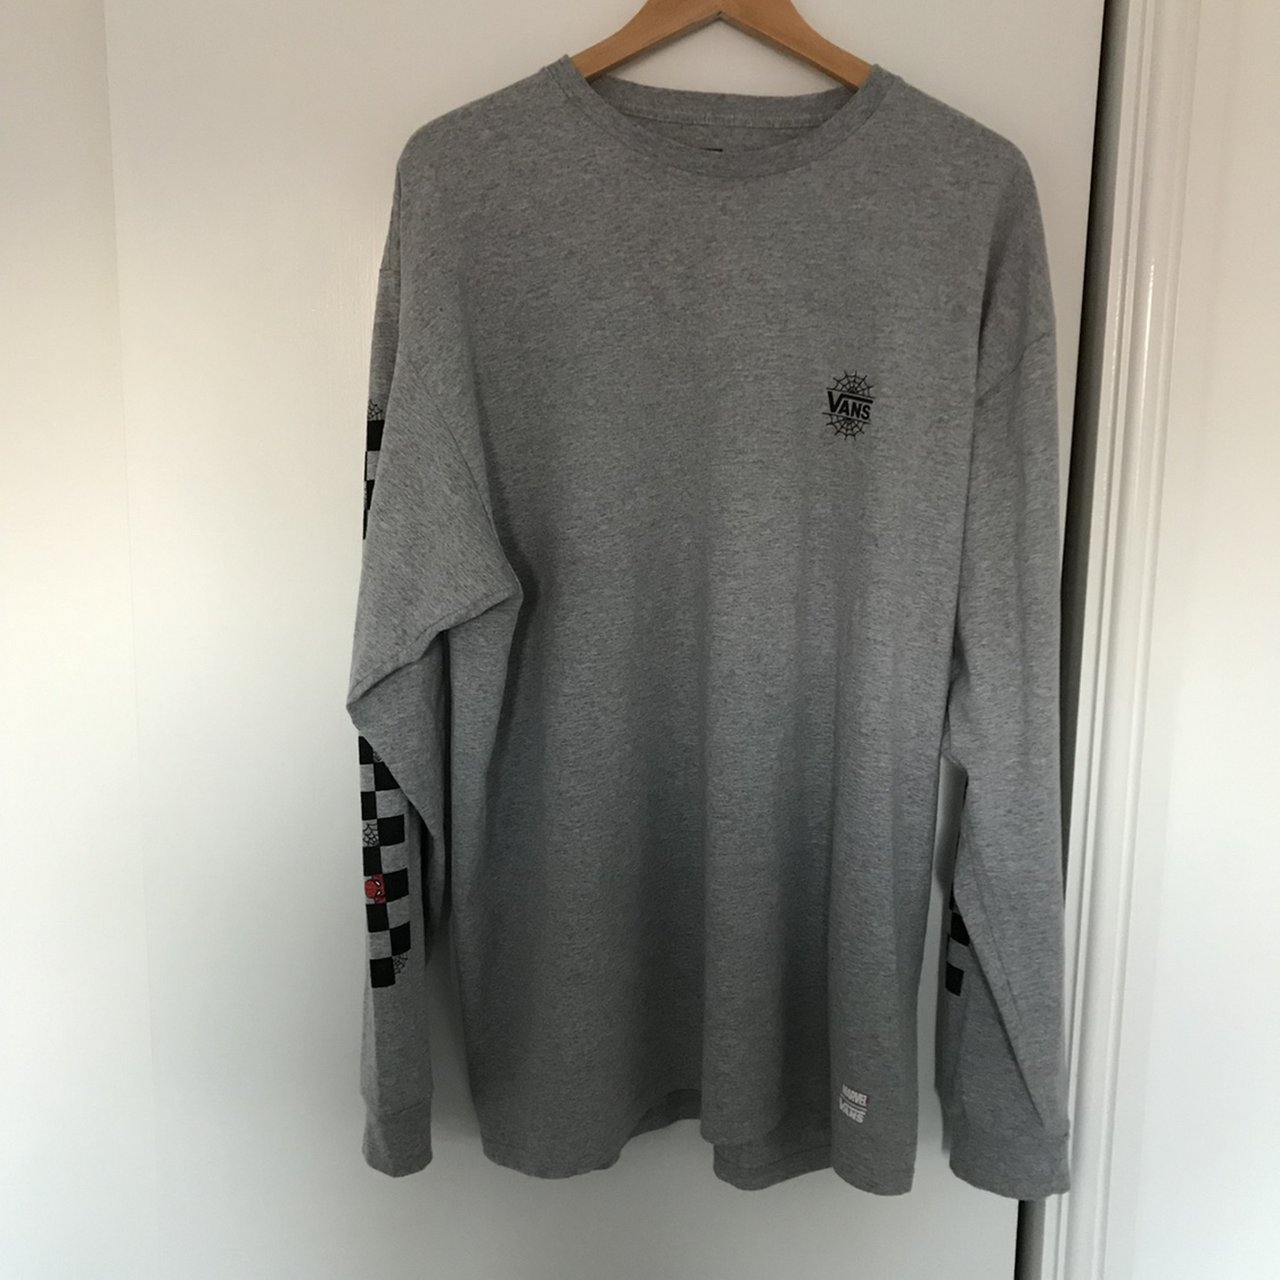 6f29040e426 Vans x Marvel long sleeve Spider-Man Top in grey Brand new - Depop